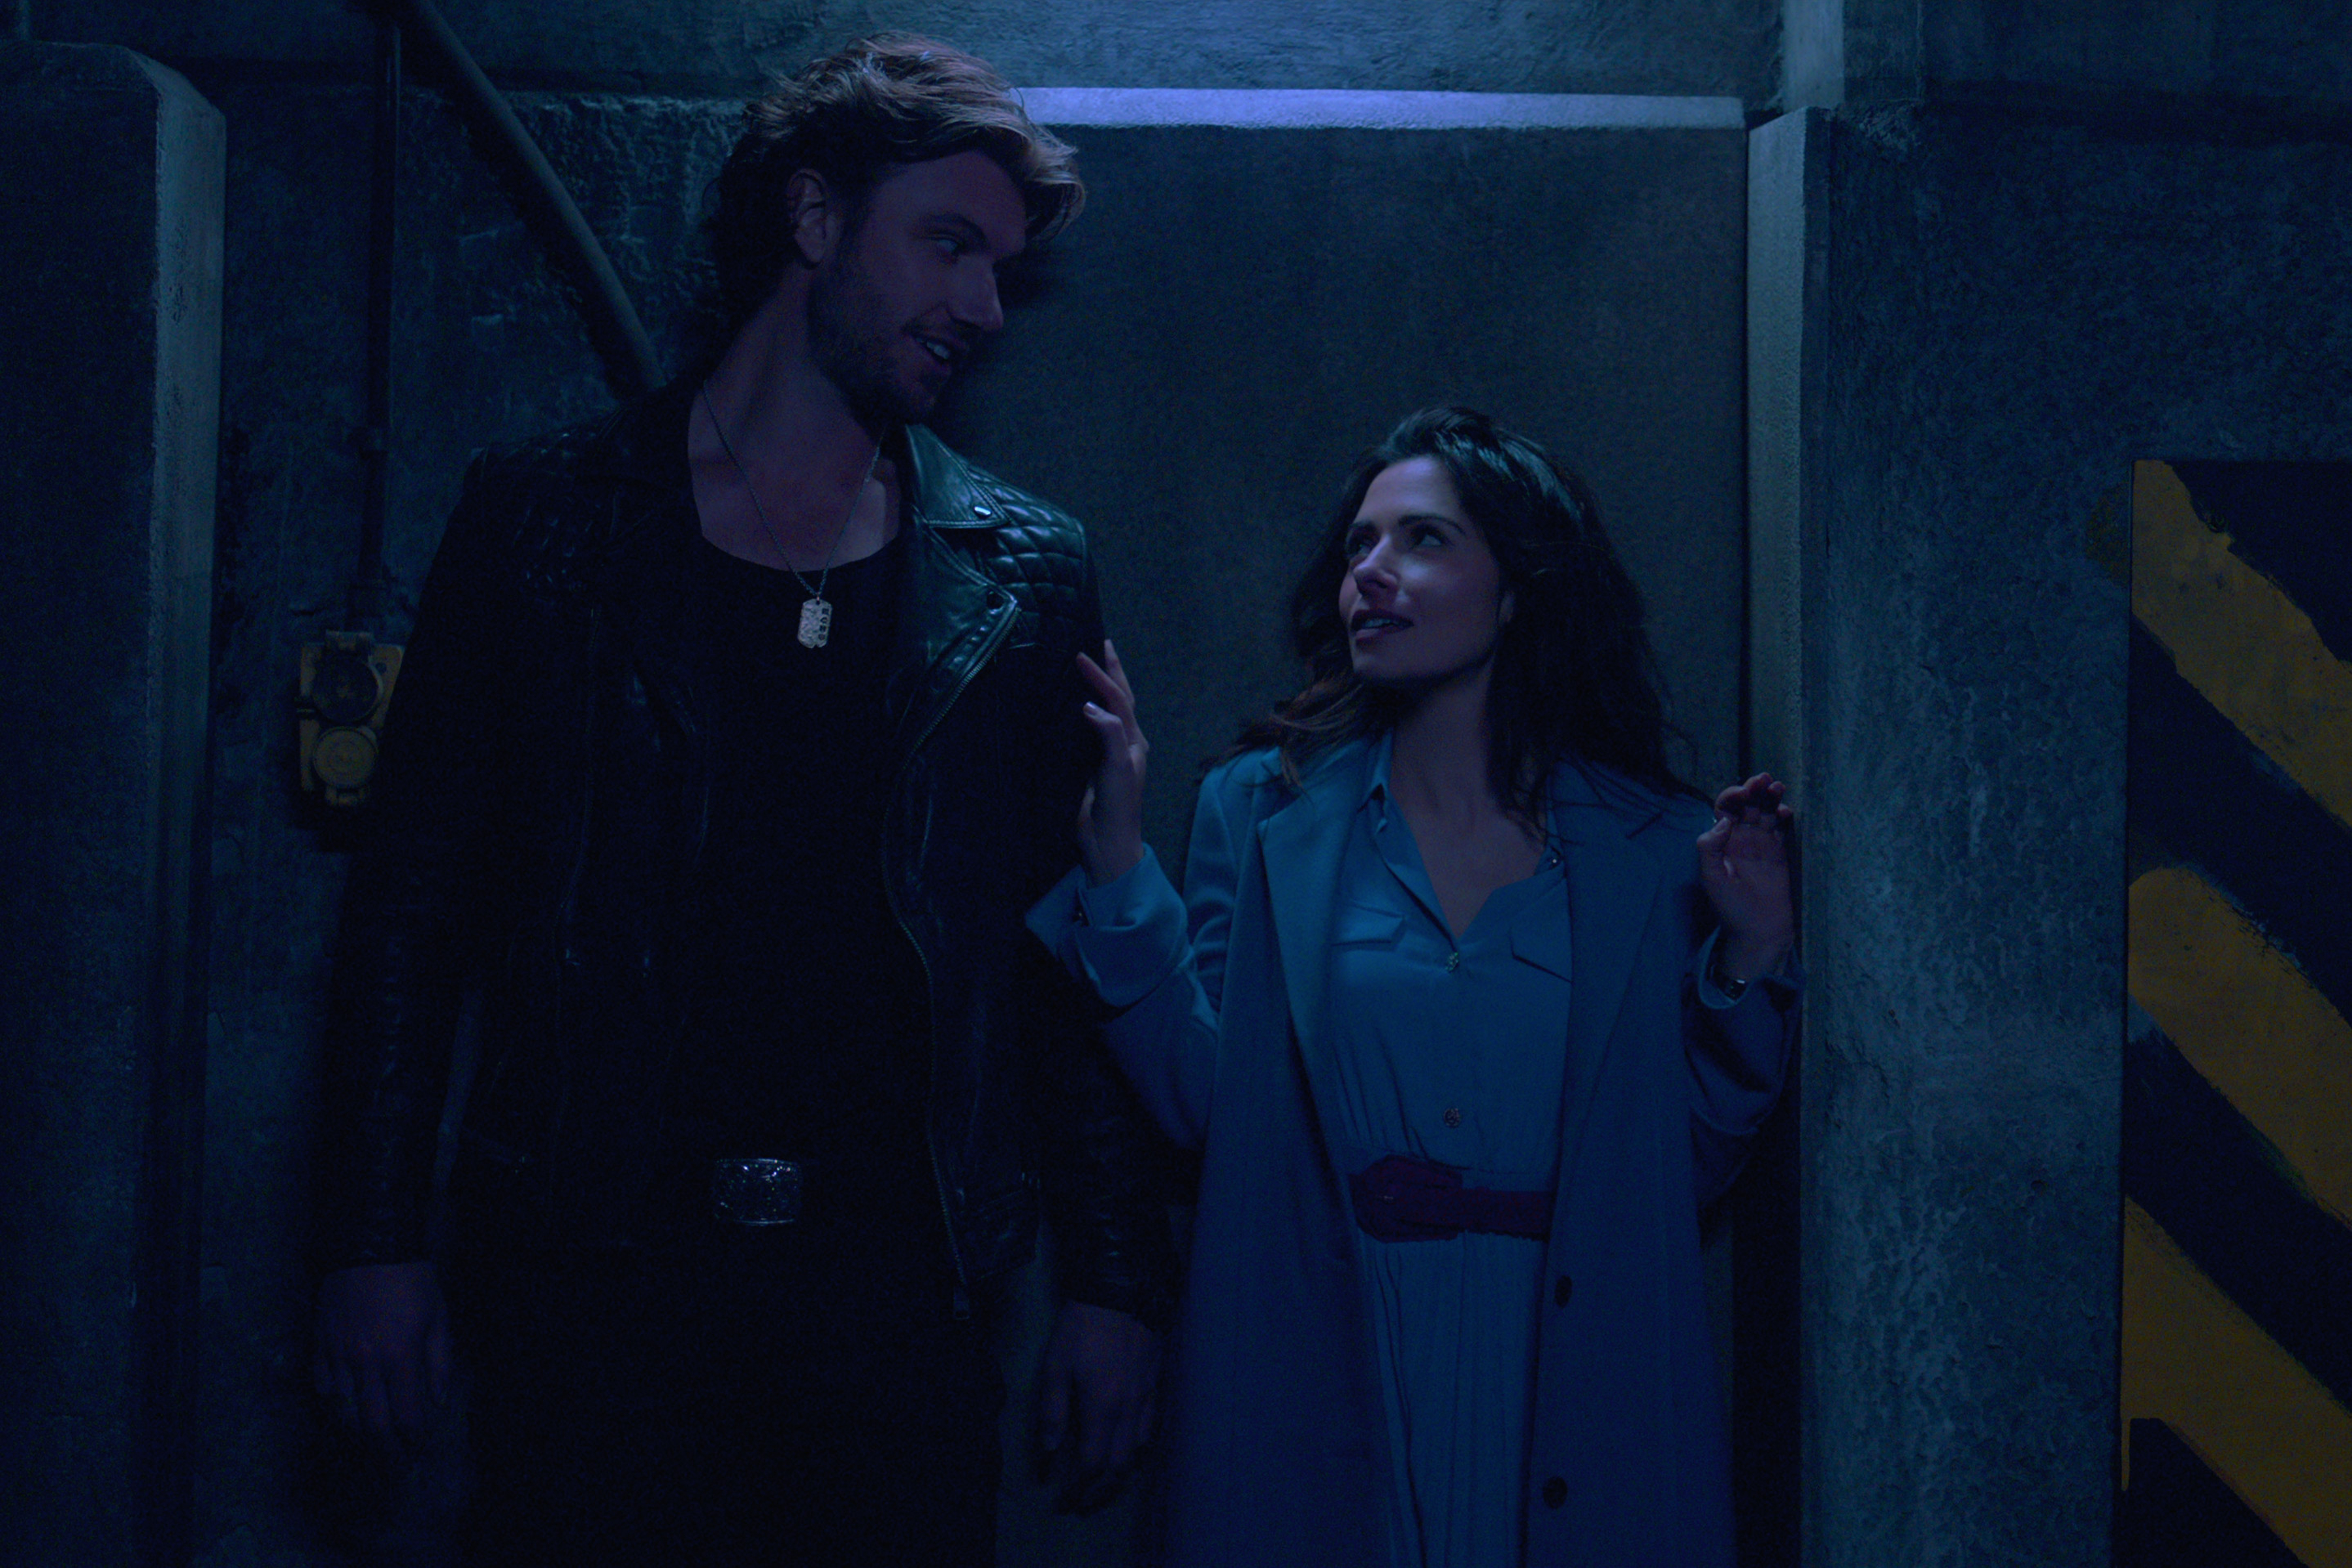 SEX/LIFE (L to R) ADAM DEMOS as BRAD SIMON and SARAH SHAHI as BILLIE CONNELLY in episode 102 of SEX/LIFE Cr. COURTESY OF NETFLIX © 2021